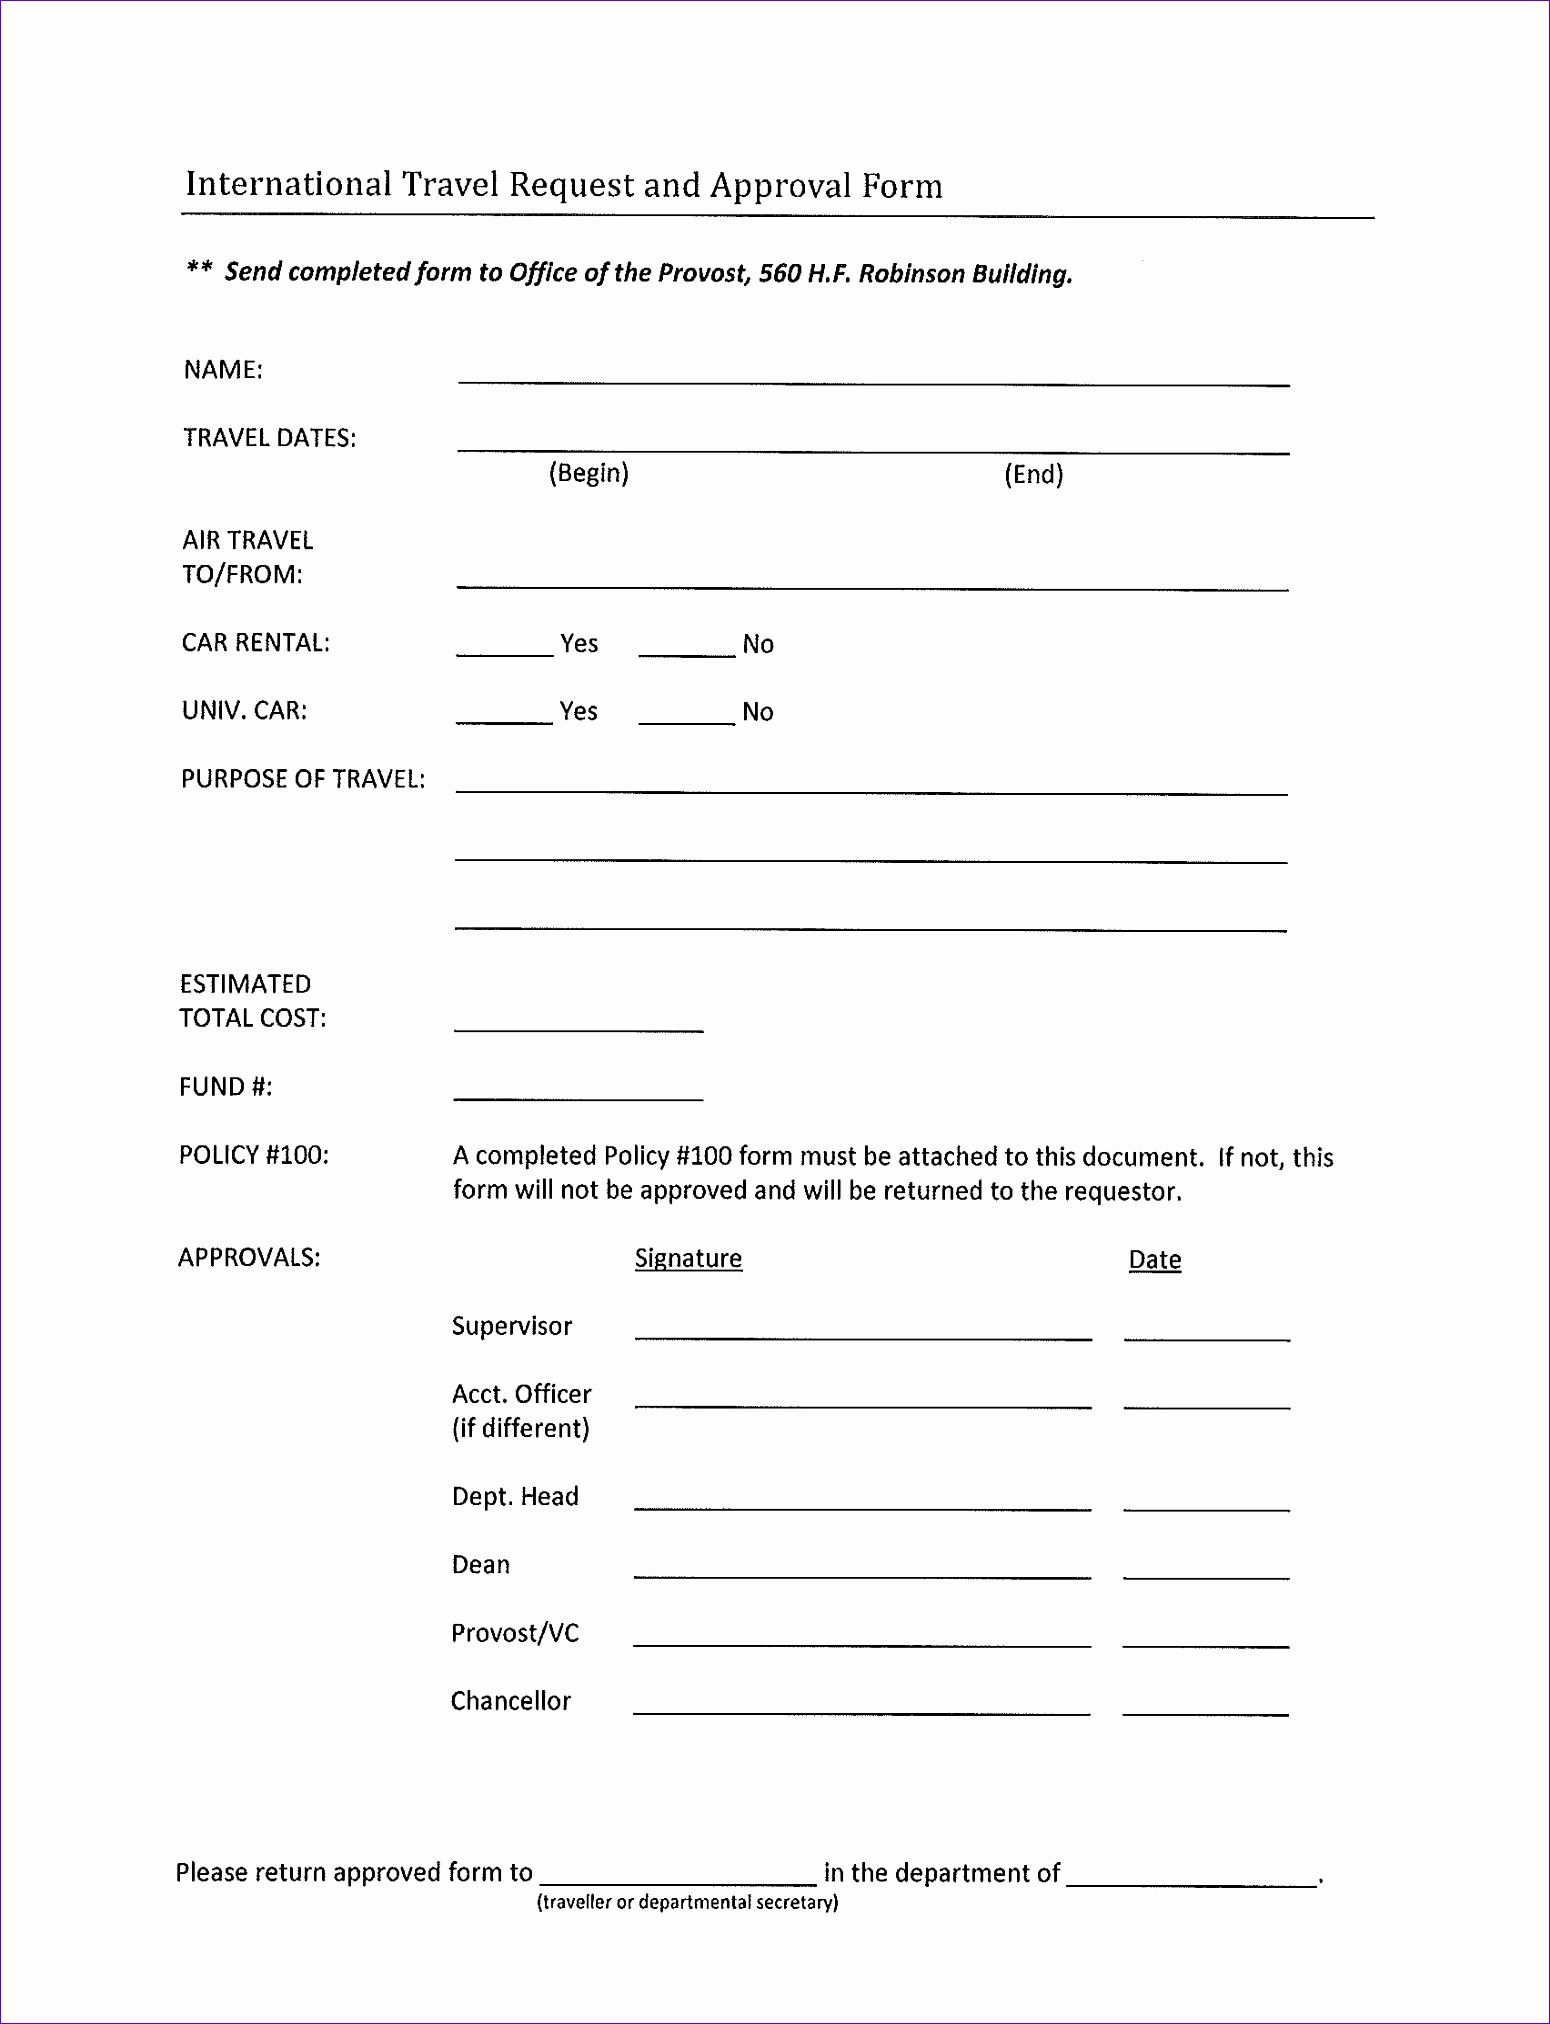 International Travel Request Approval Form 1